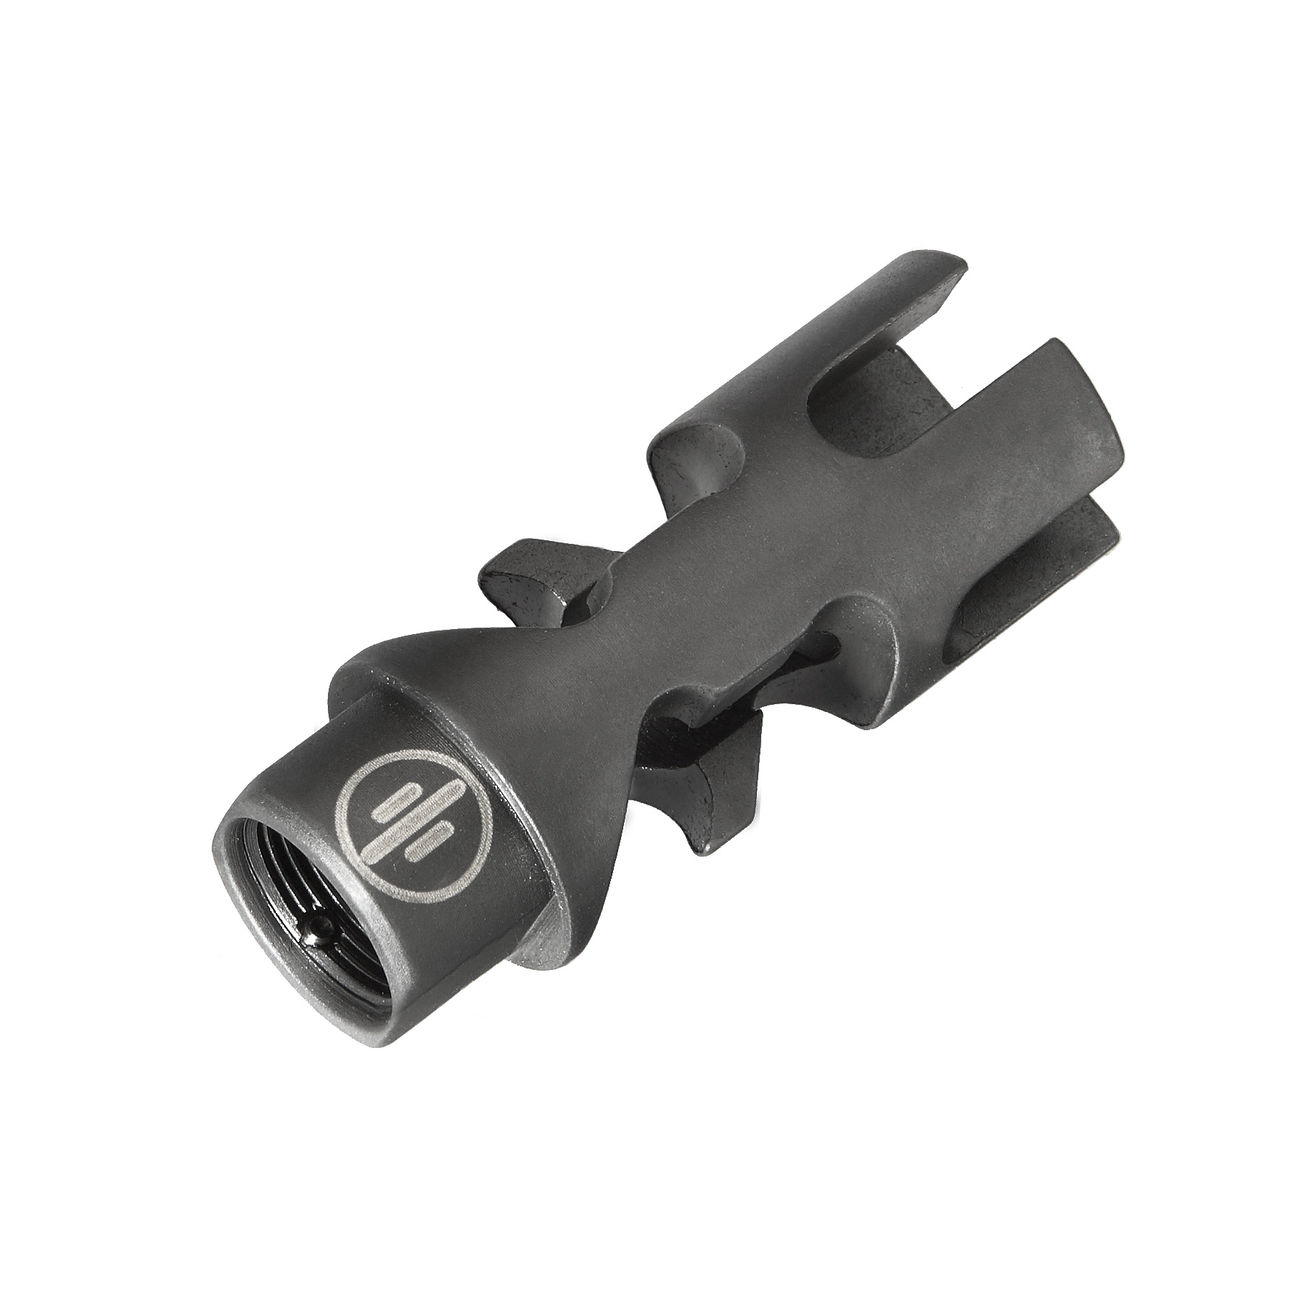 MadBull / Primary Weapon FSC 556 Flash-Hider schwarz 1